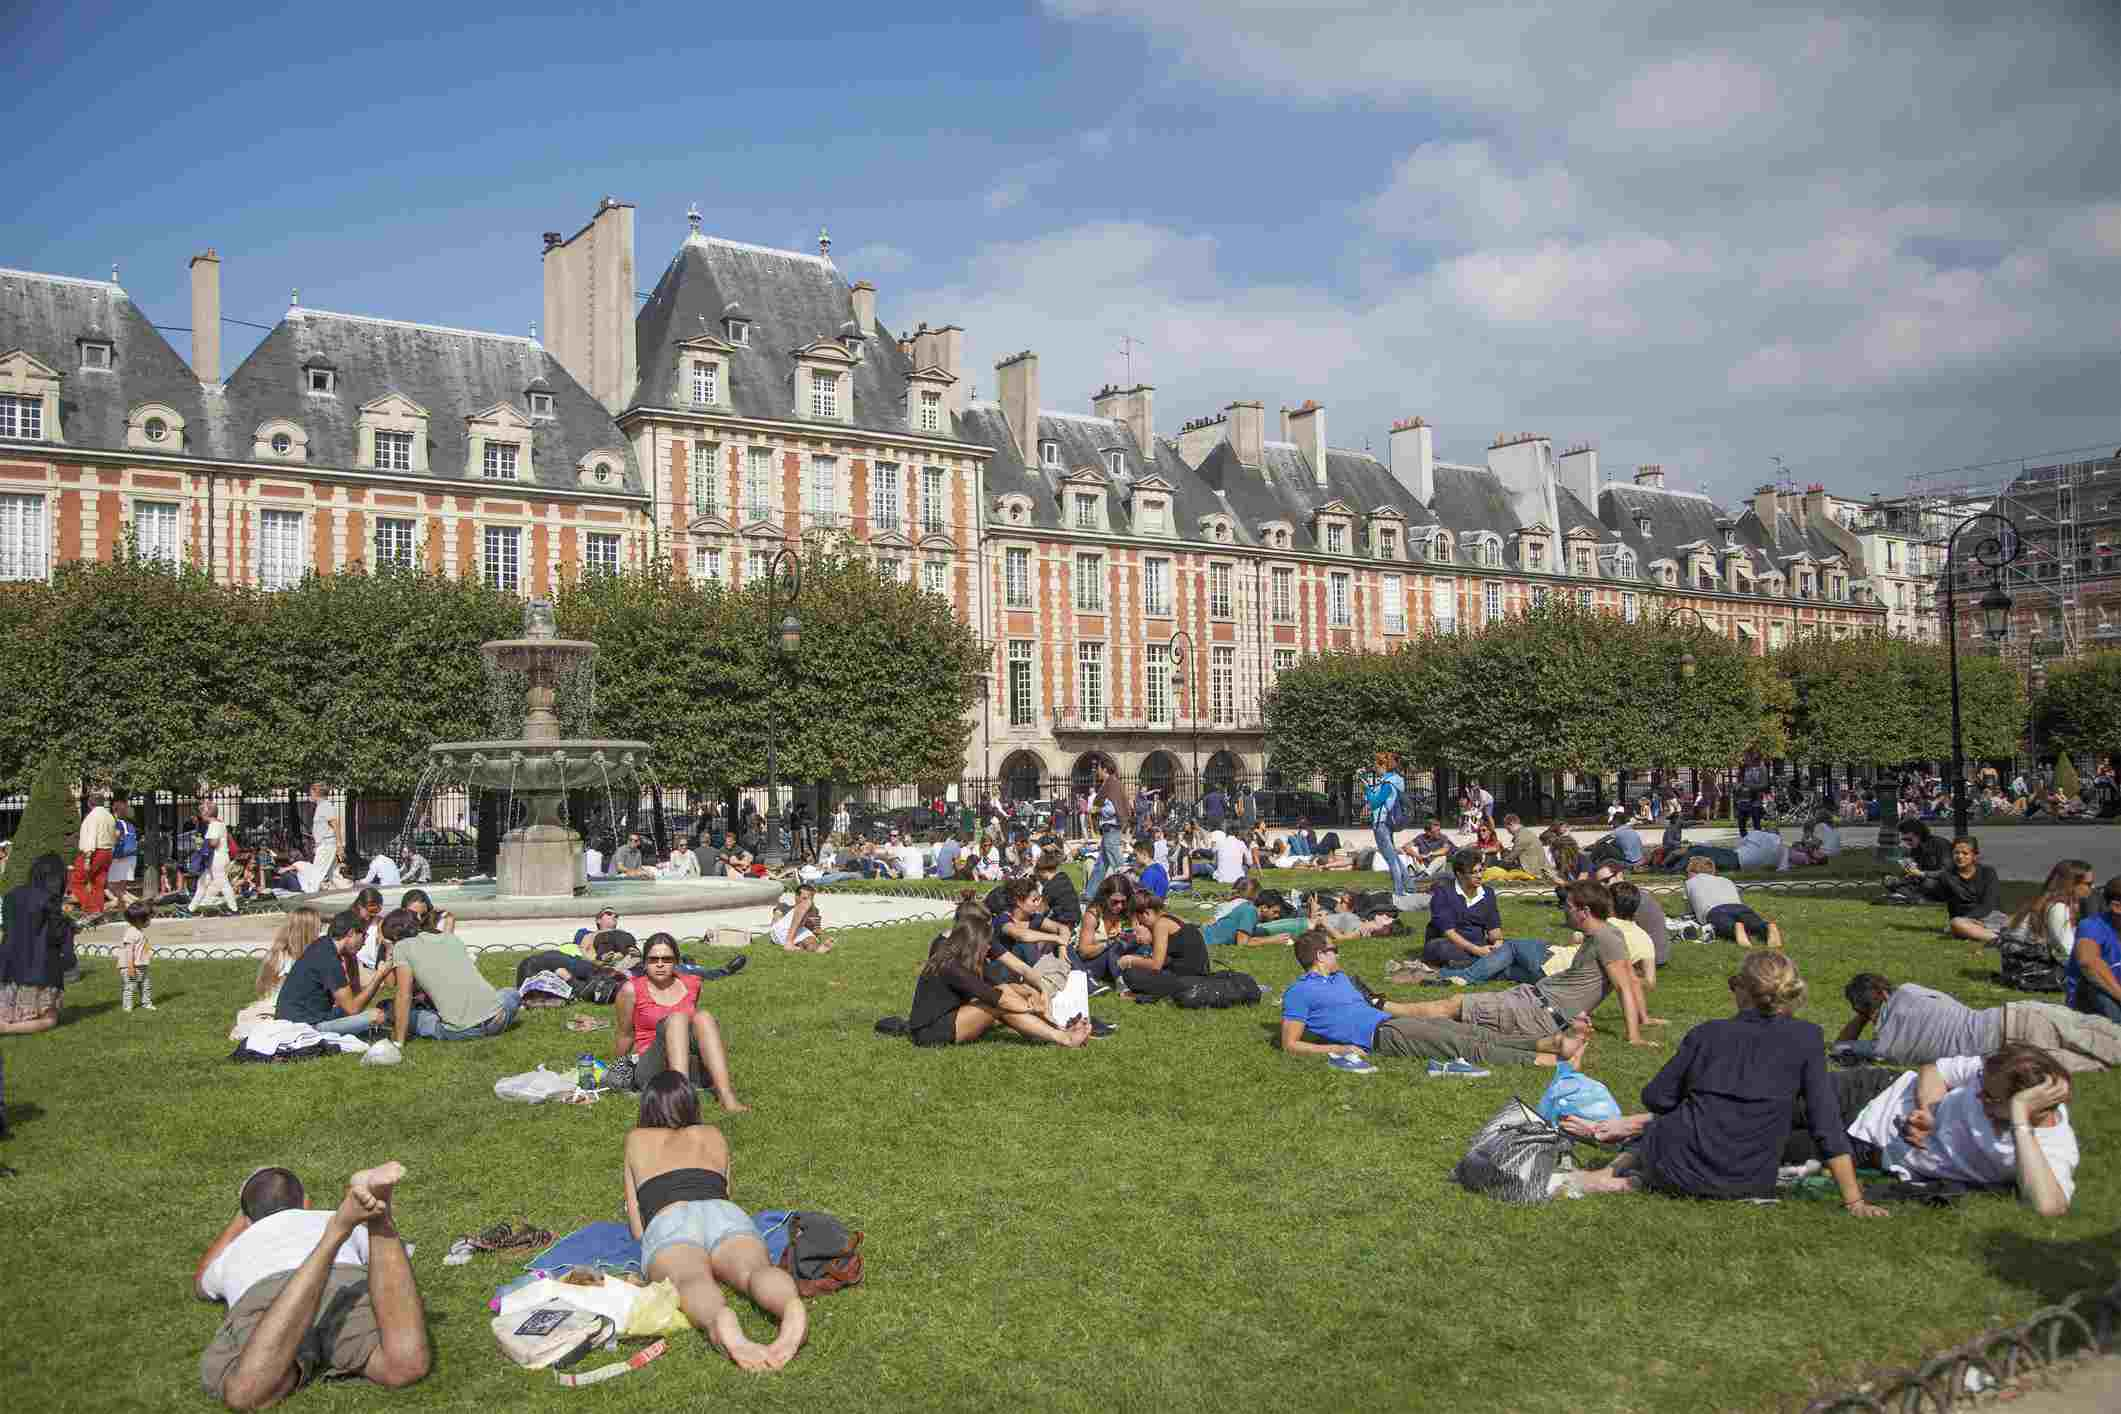 The Place des Vosges is one of the best spots for a picnic on a sunny day in Paris.